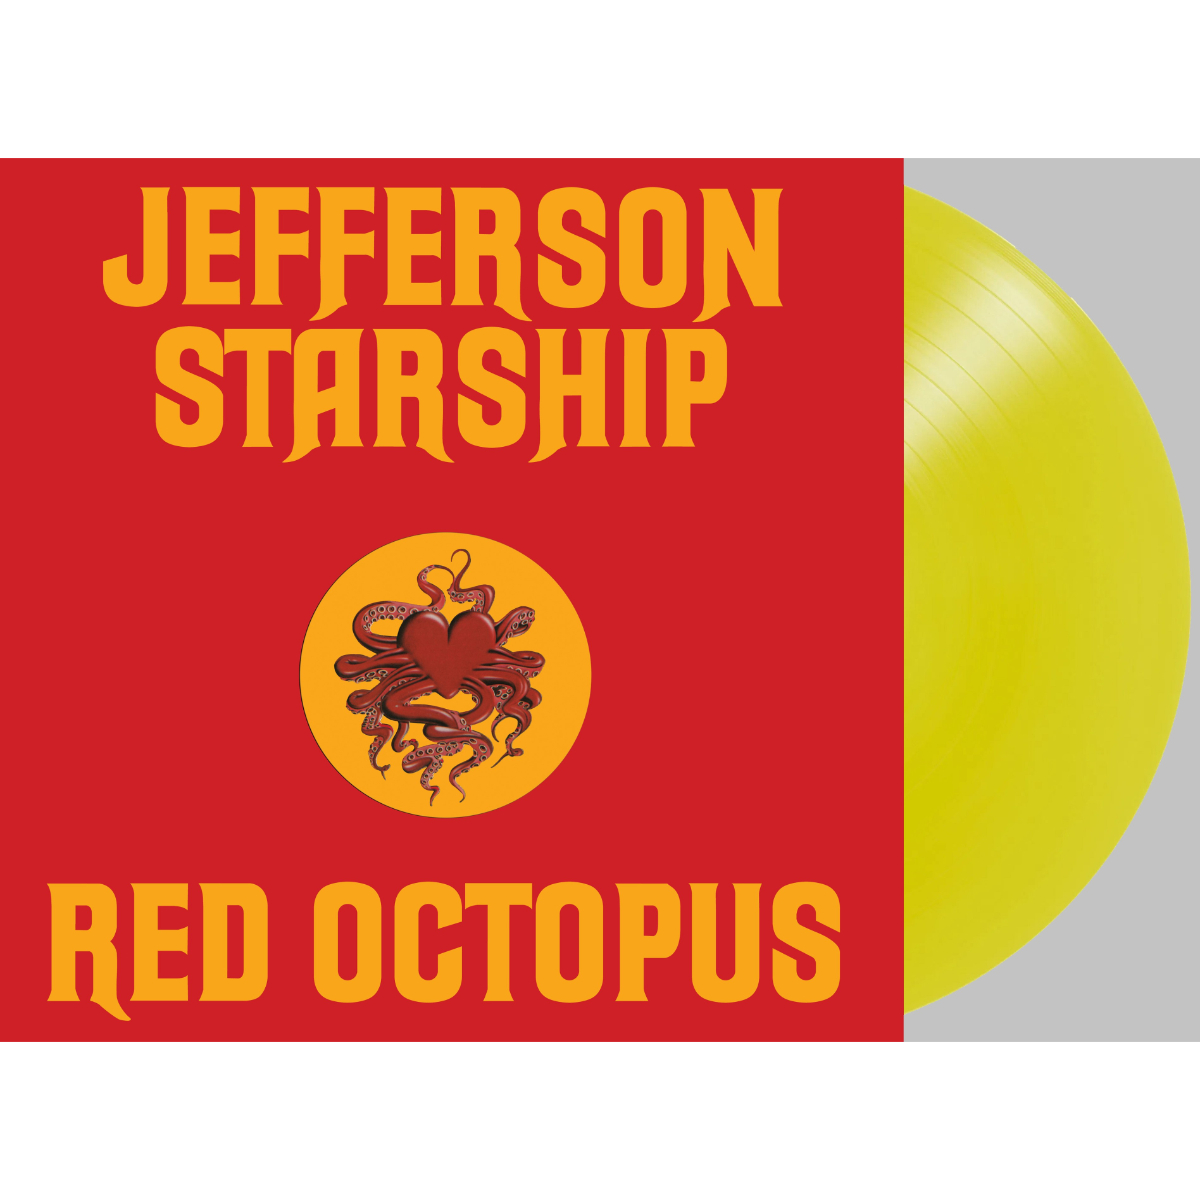 Jefferson Starship - Red Octopus (180 Gram Translucent Yellow Audiophile Vinyl/45th Anniversary/Gold Embossed Die-Cut Cover)